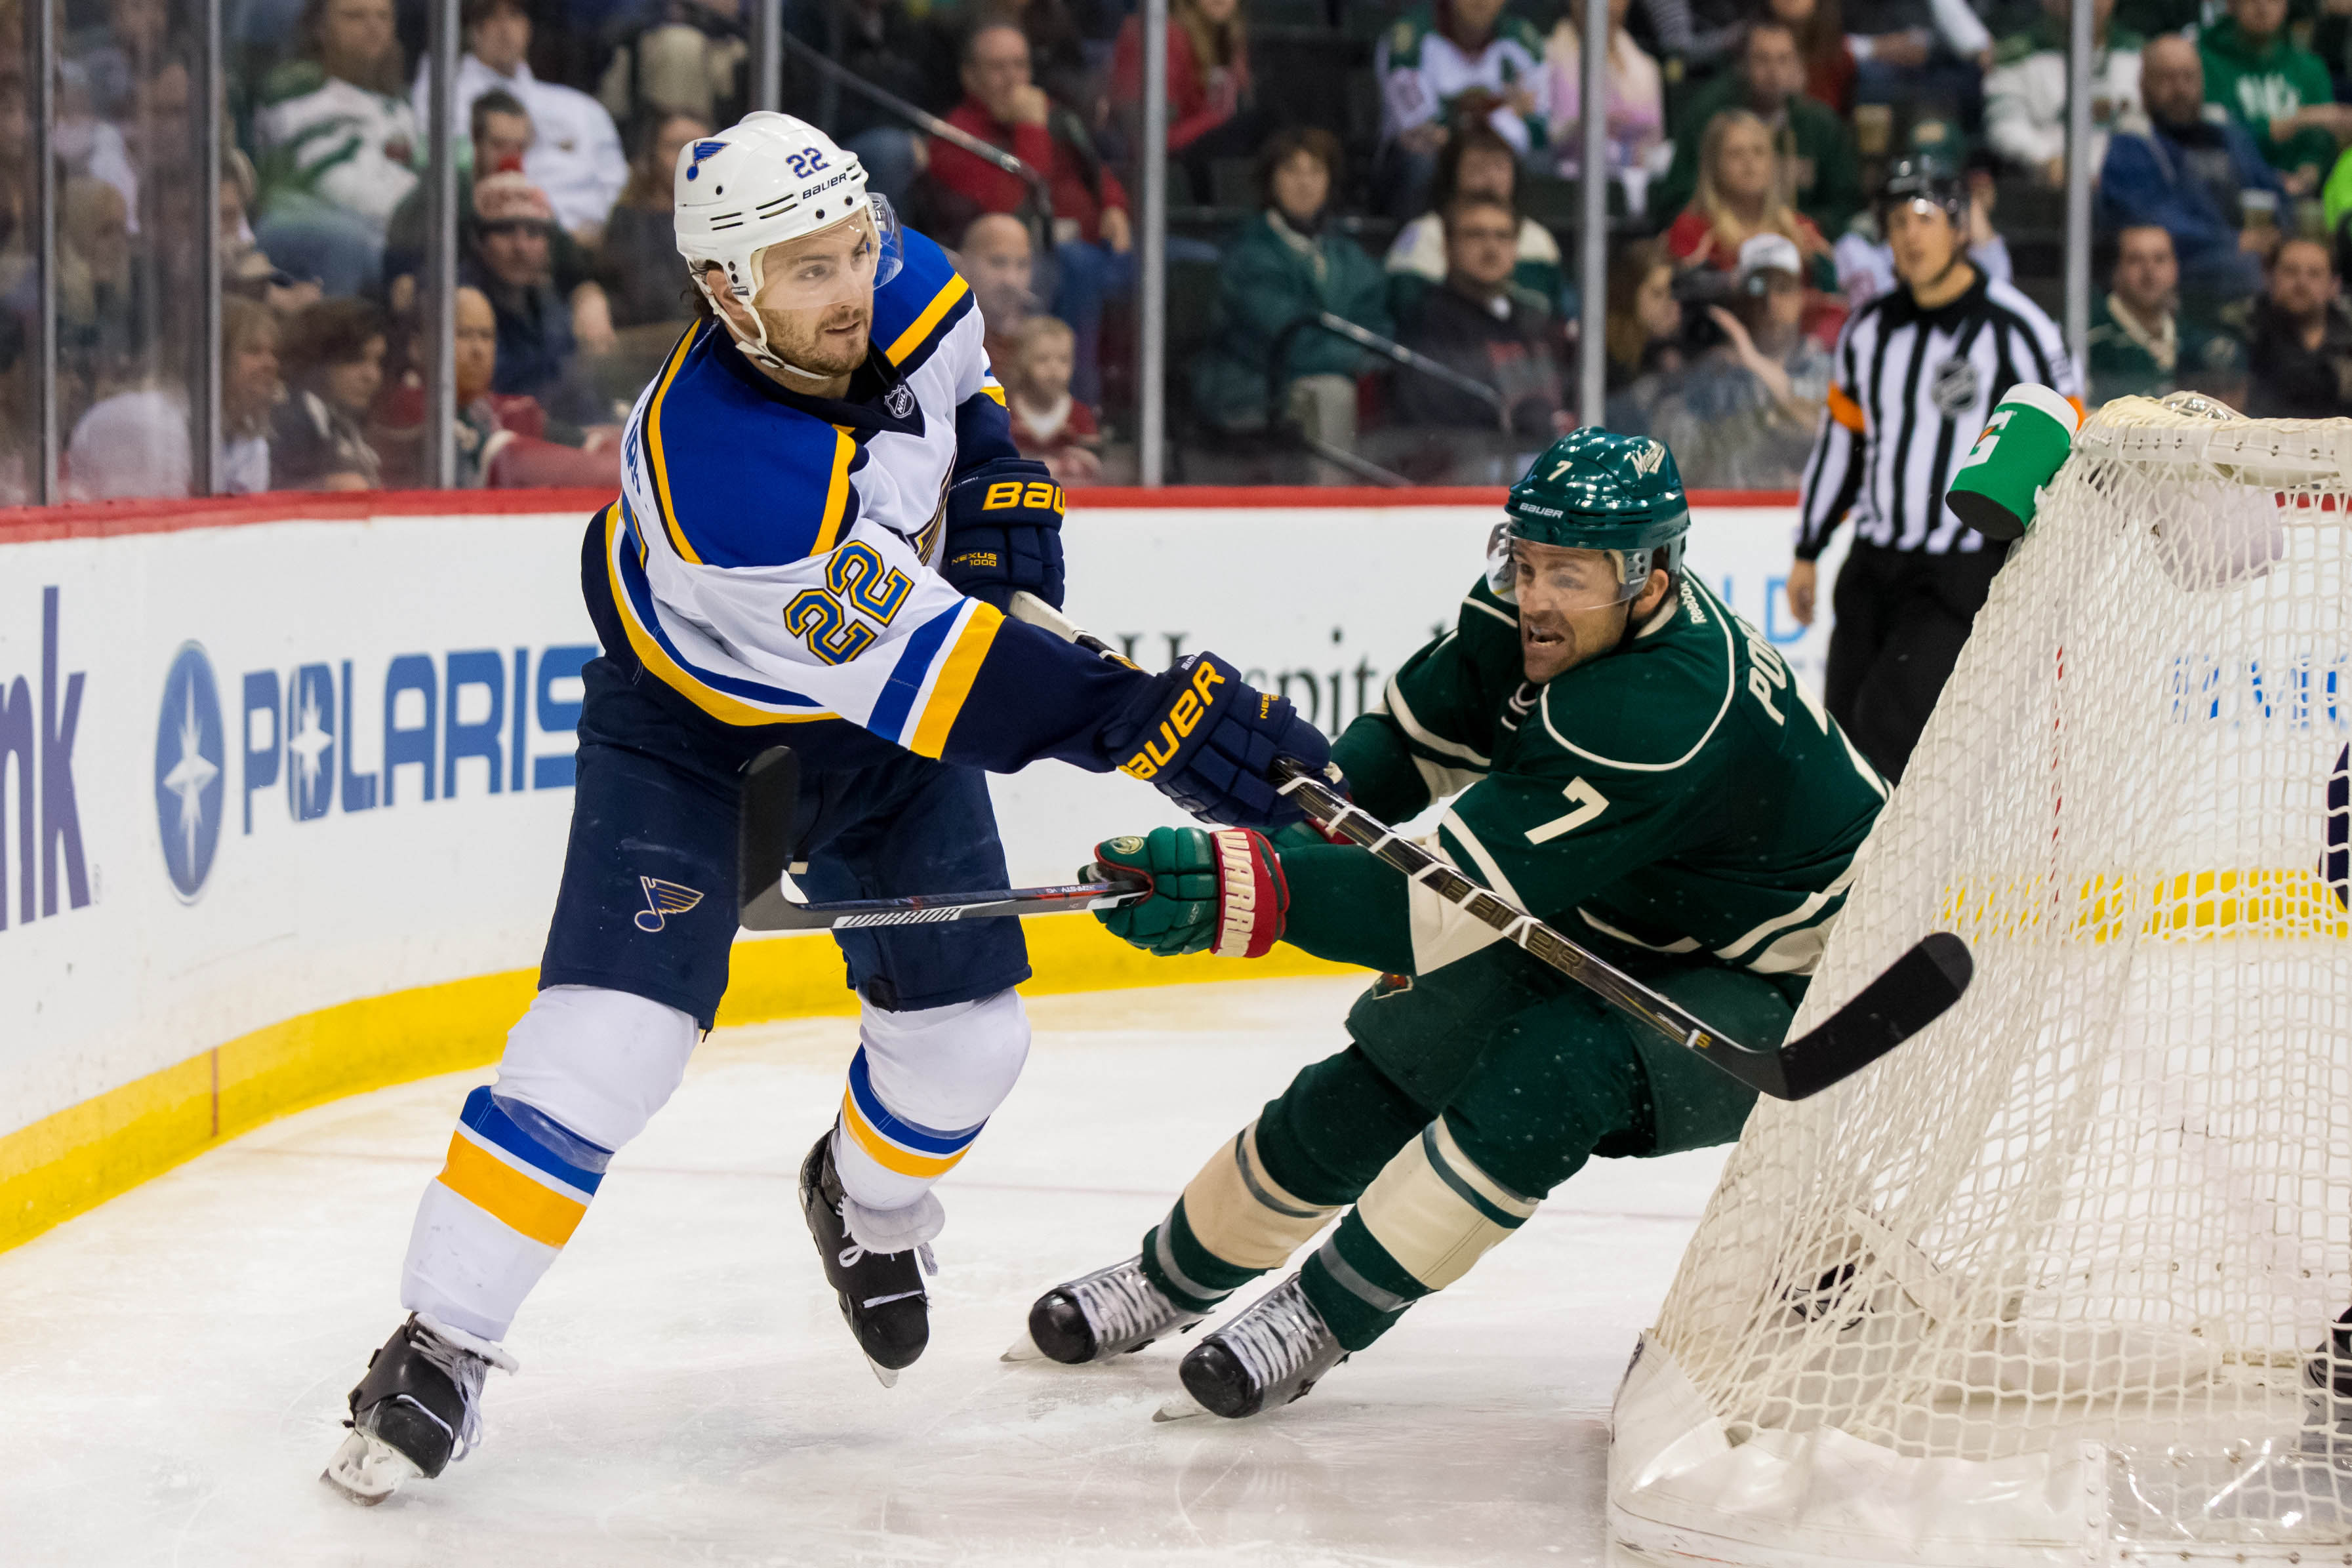 Mar 6, 2016; Saint Paul, MN, USA; St. Louis Blues defenseman Kevin Shattenkirk (22) passes in the second period against the Minnesota Wild forward Chris Porter (7) at Xcel Energy Center. The St. Louis Blues beat the Minnesota Wild 4-2. Mandatory Credit: Brad Rempel-USA TODAY Sports